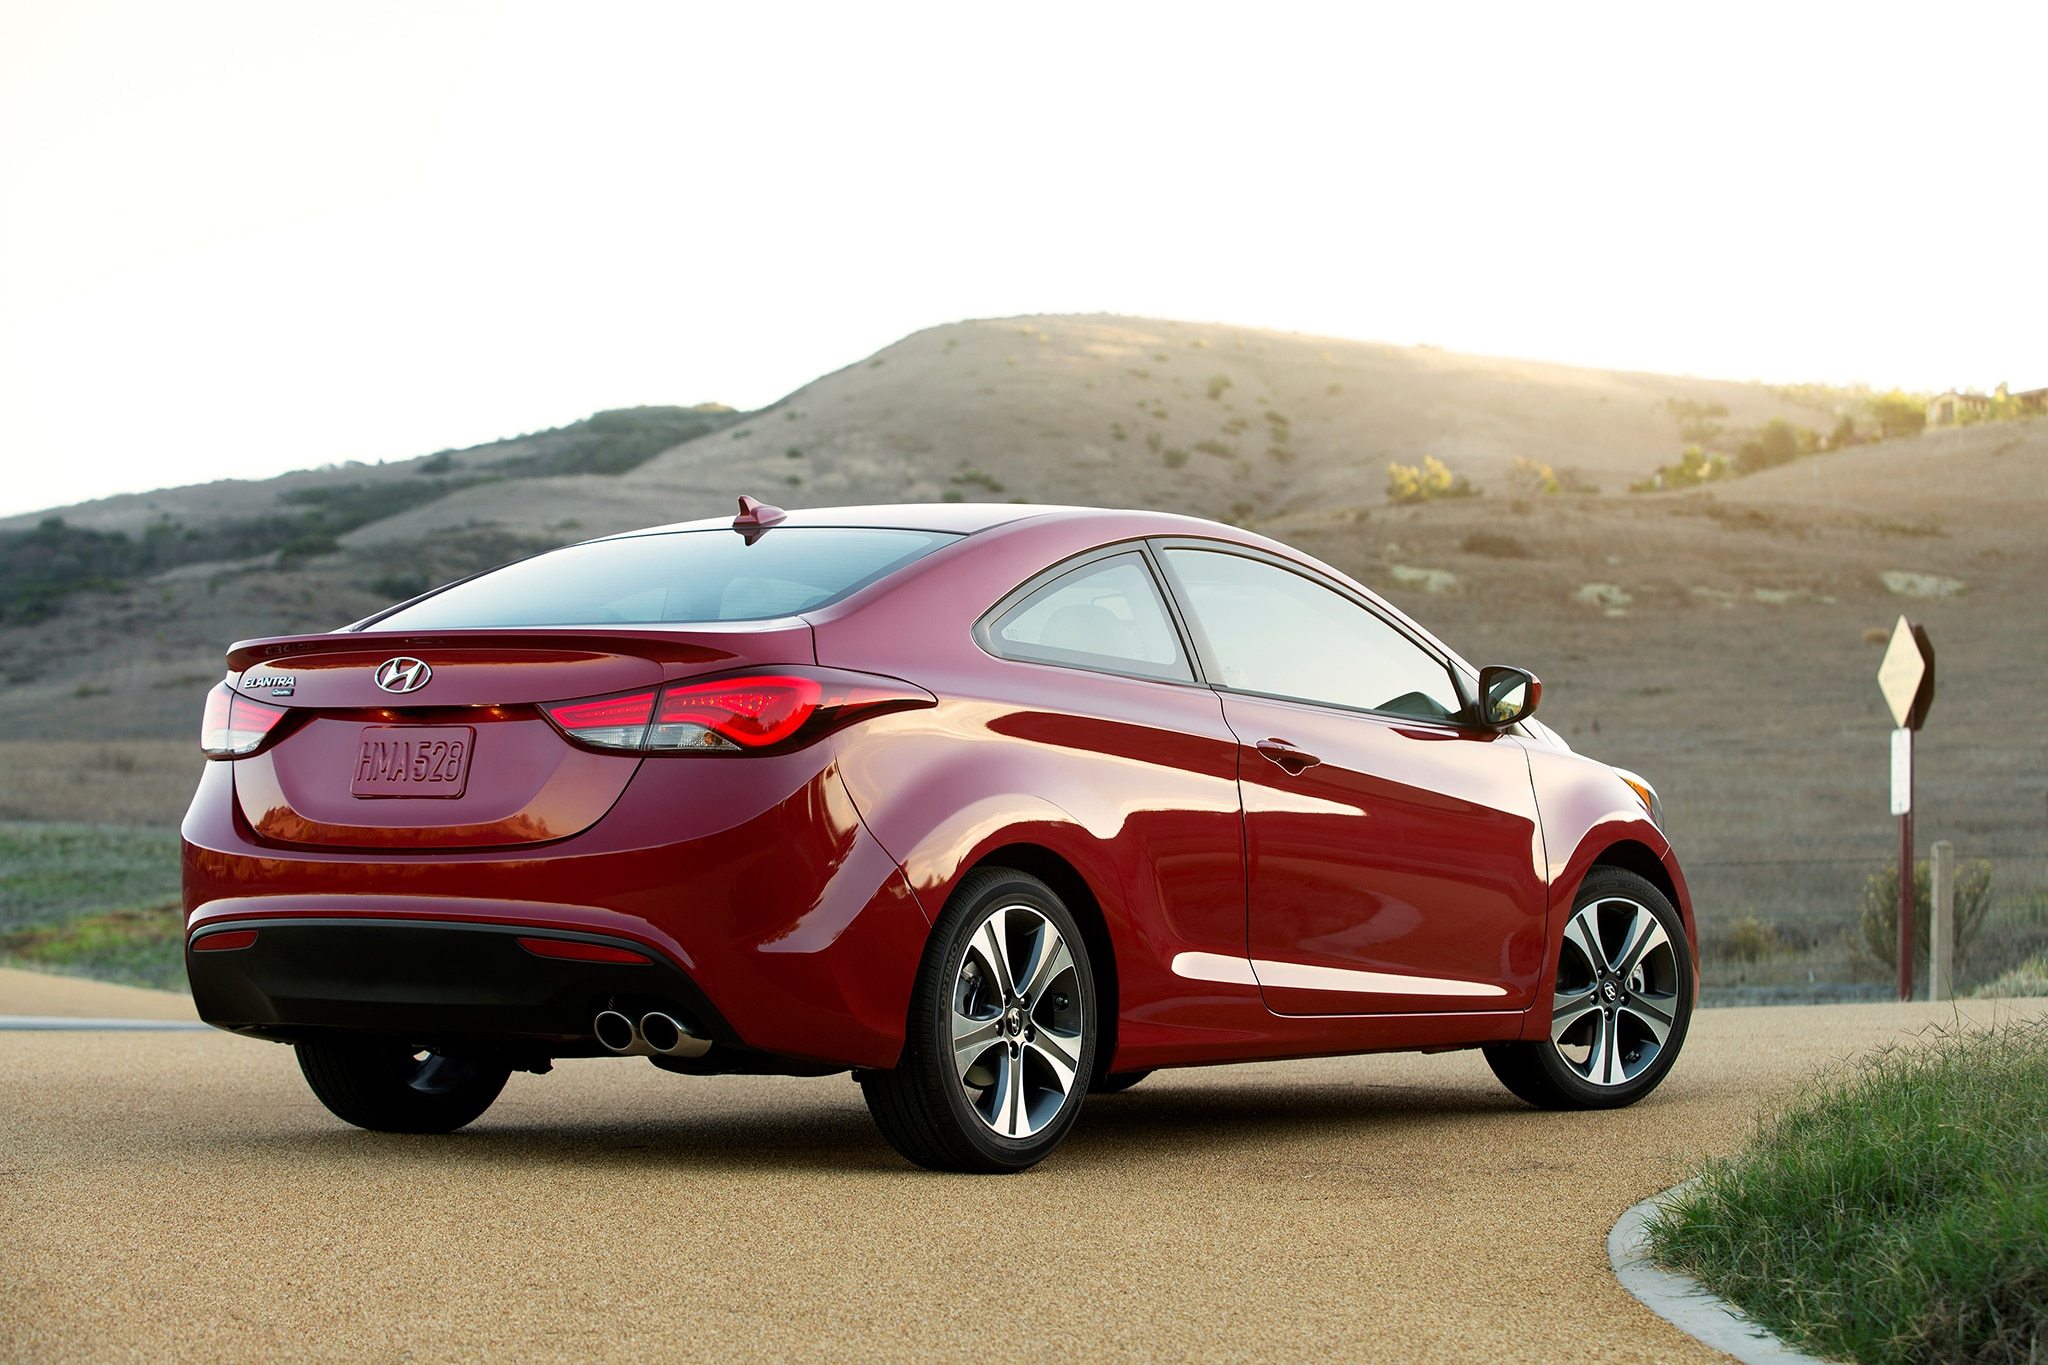 2015 hyundai sonata pricing options and specifications cleanmpg - Hyundai Elantra Coupe Discontinued For 2015